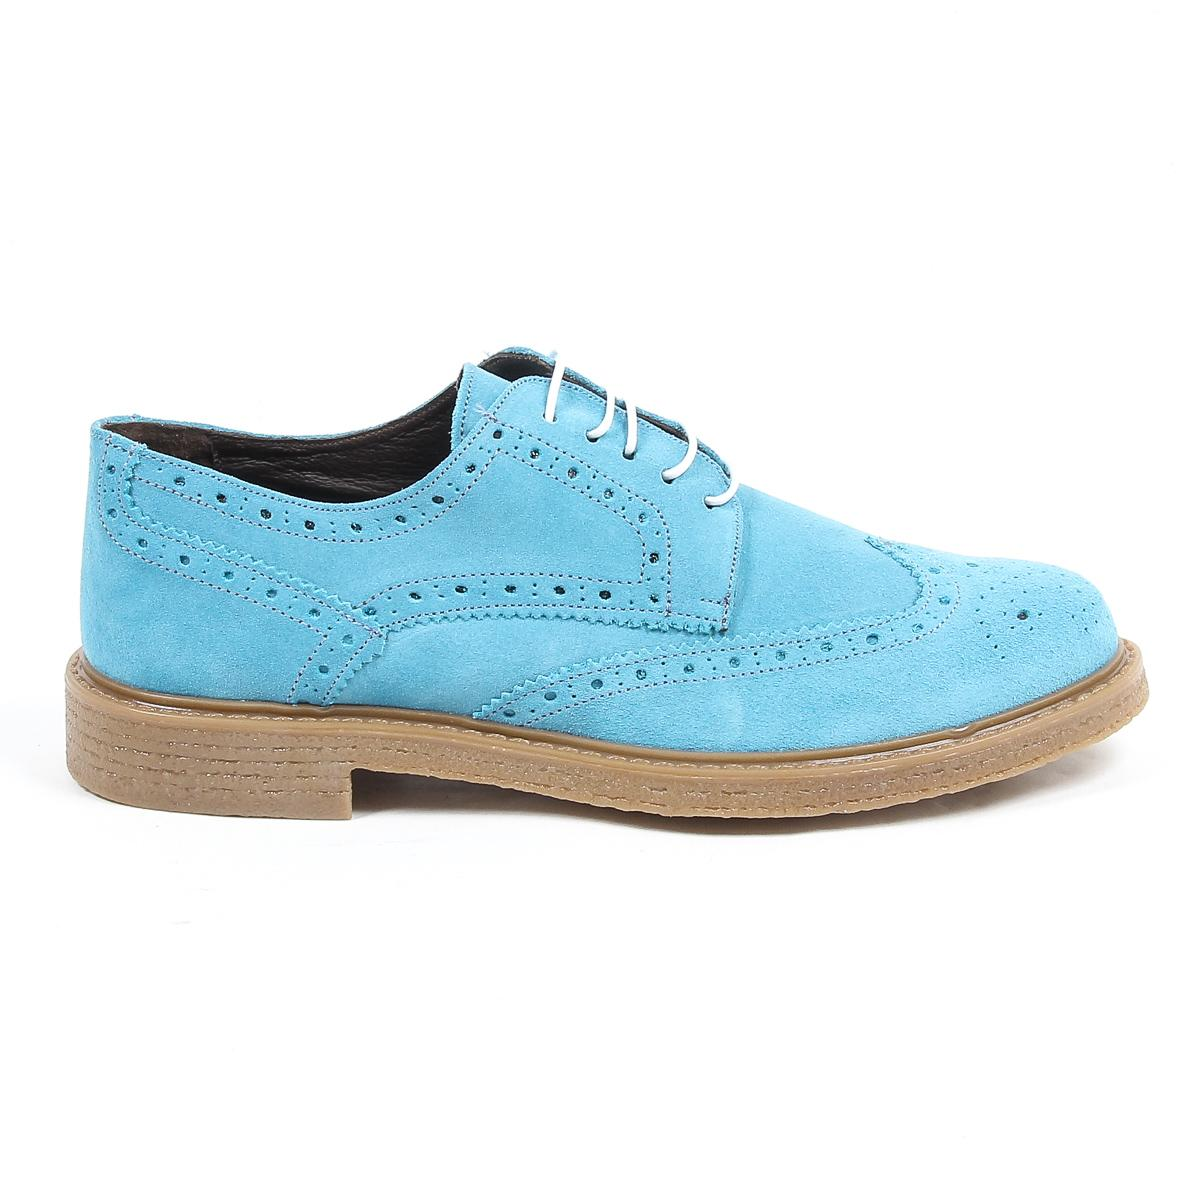 cd59356fb89d V 1969 Italia Mens Brogue Oxford Shoe. Details: 914 CAMOSCIO JEANS - Color:  Light Blue - Composition: 100% SUEDE LEATHER - Sole: 100% RUBBER - Made:  ITALY